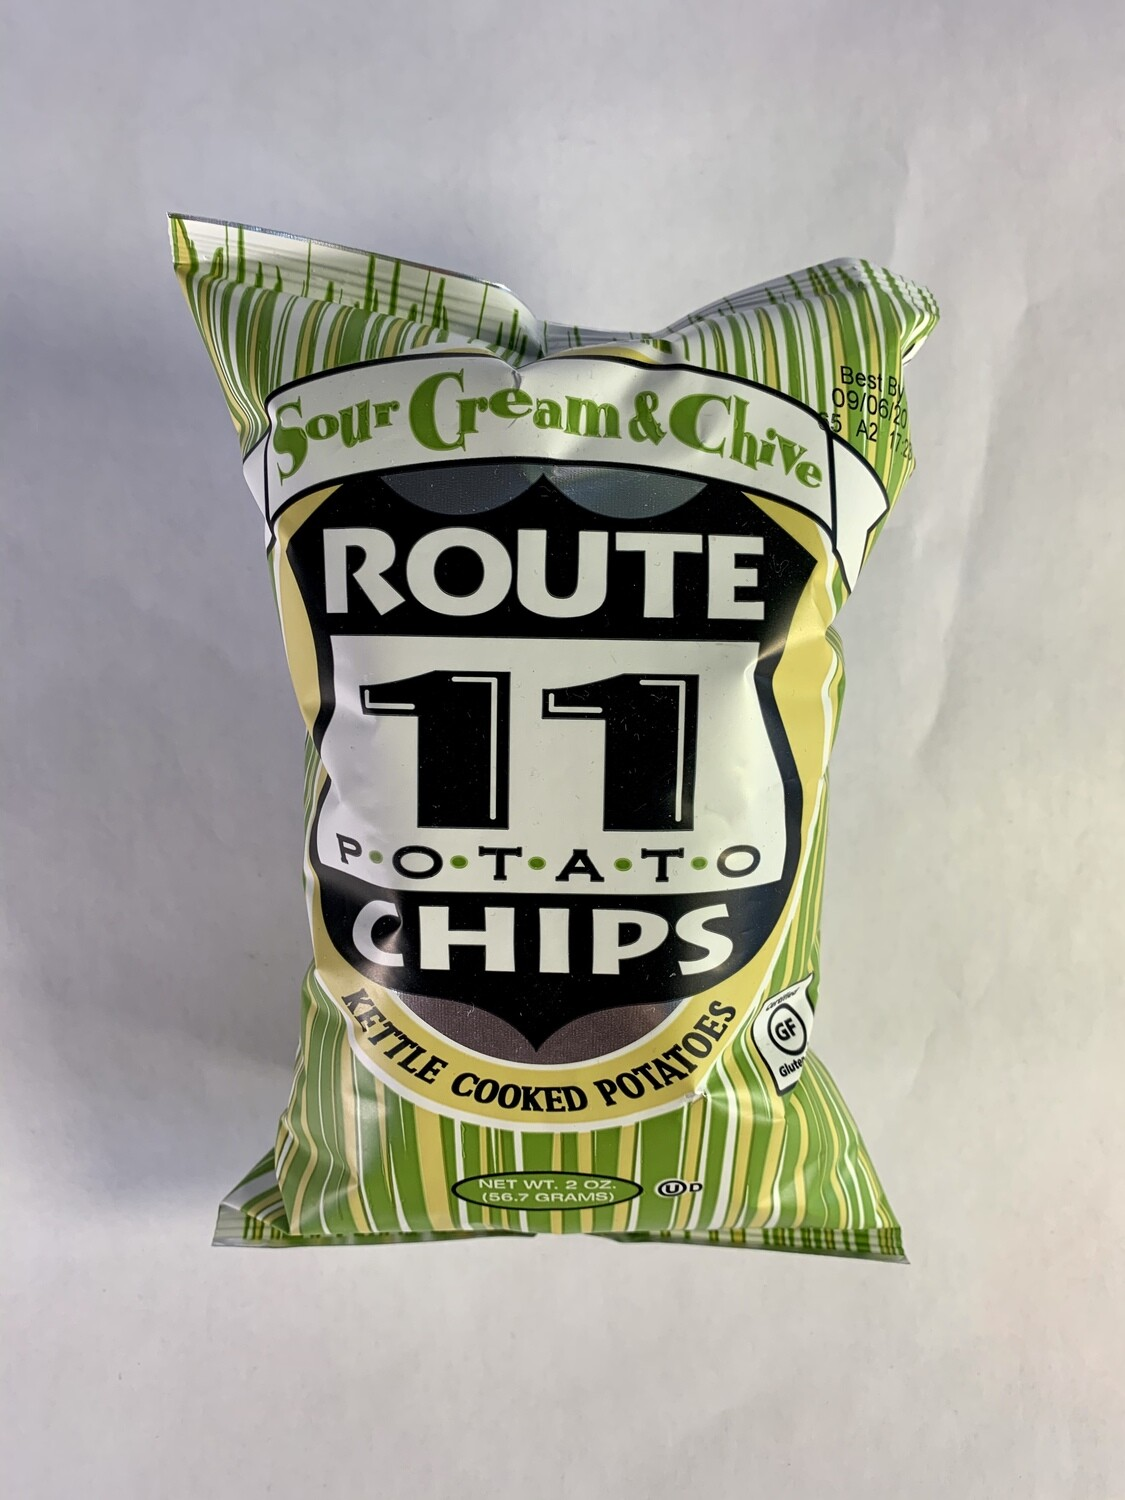 chips, sour cream and chive; 2oz; Rout 11